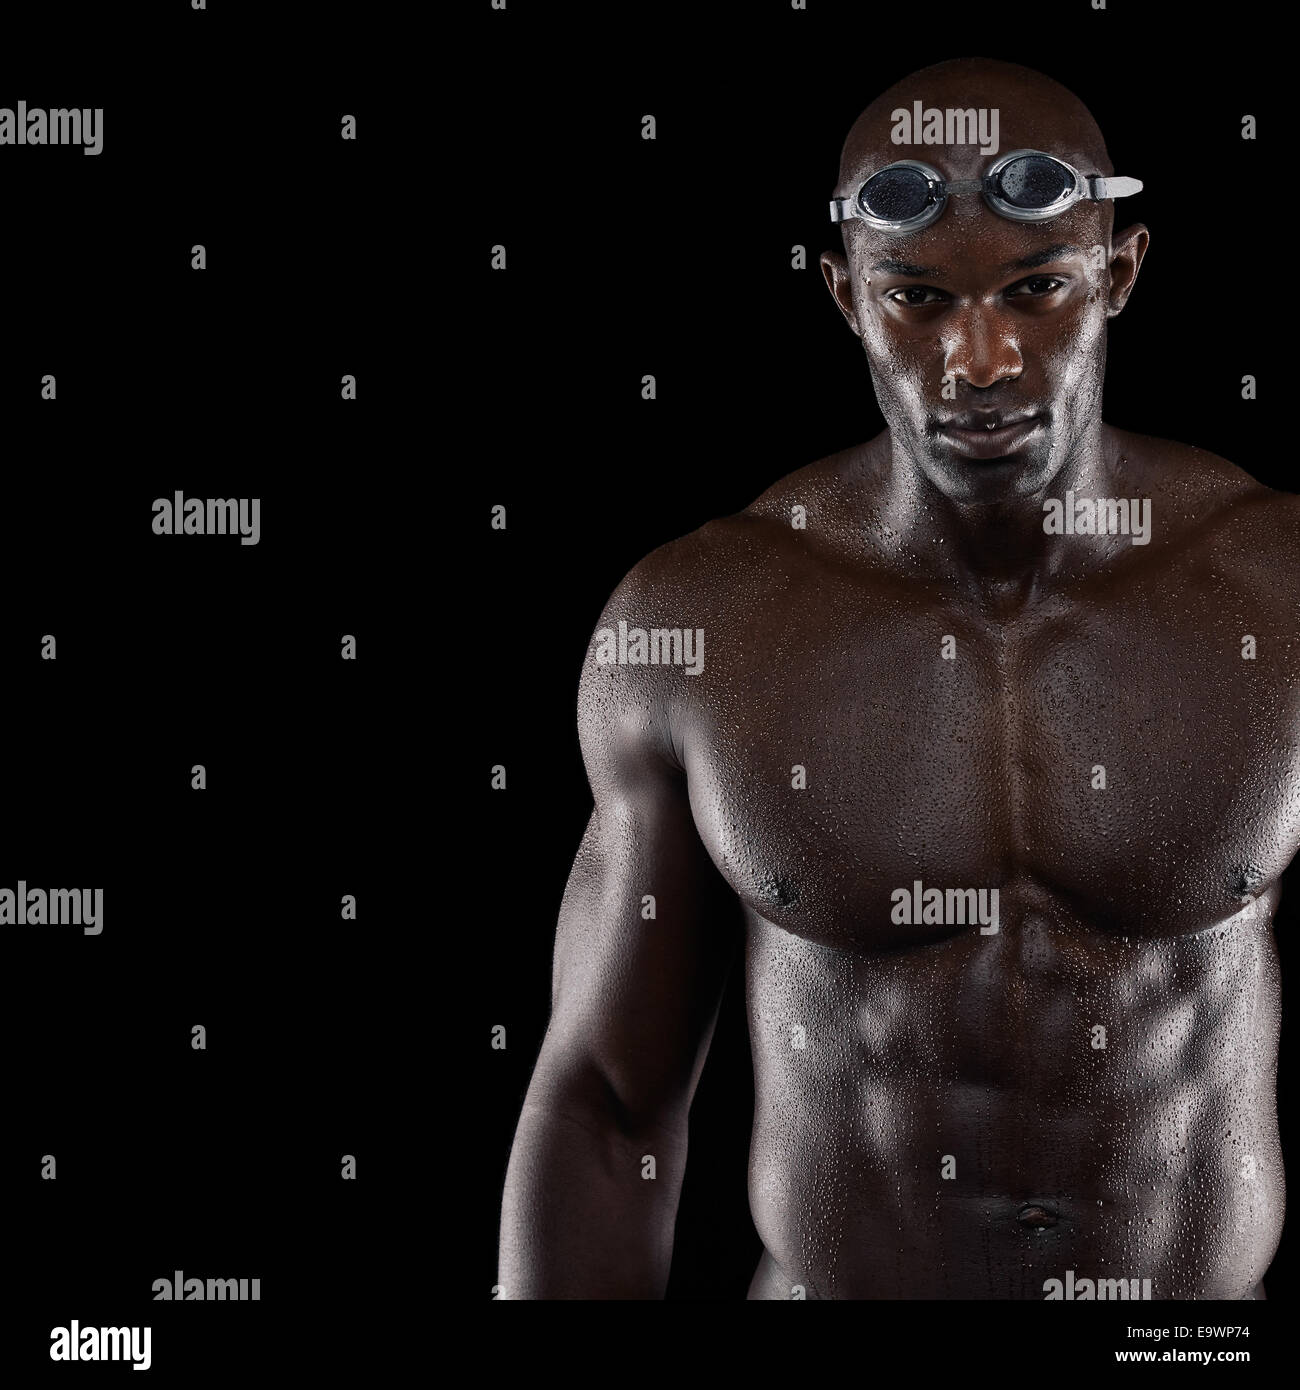 Studio shot of professional male swimmer with copy space. Young African man with muscular build wearing swimming - Stock Image